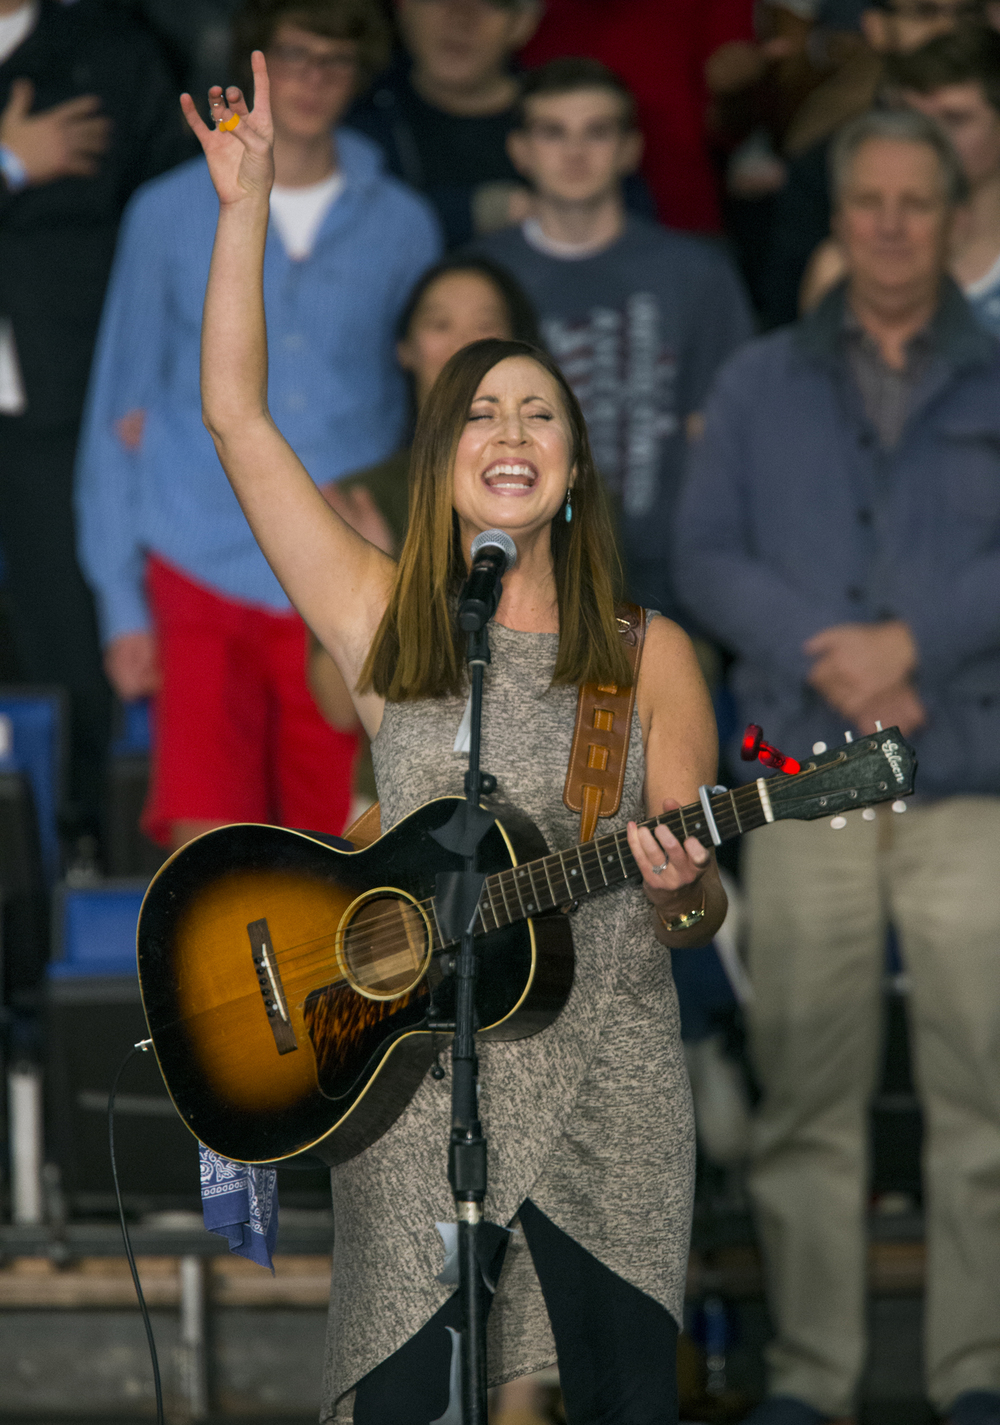 Amy Benton of Springfield sang the National Anthem and God Bless America for the crowd at the Donald Trump campaign event Monday, Nov. 9, 2015 at the Prairie Capital Convention Center. Rich Saal/The State Journal-Register